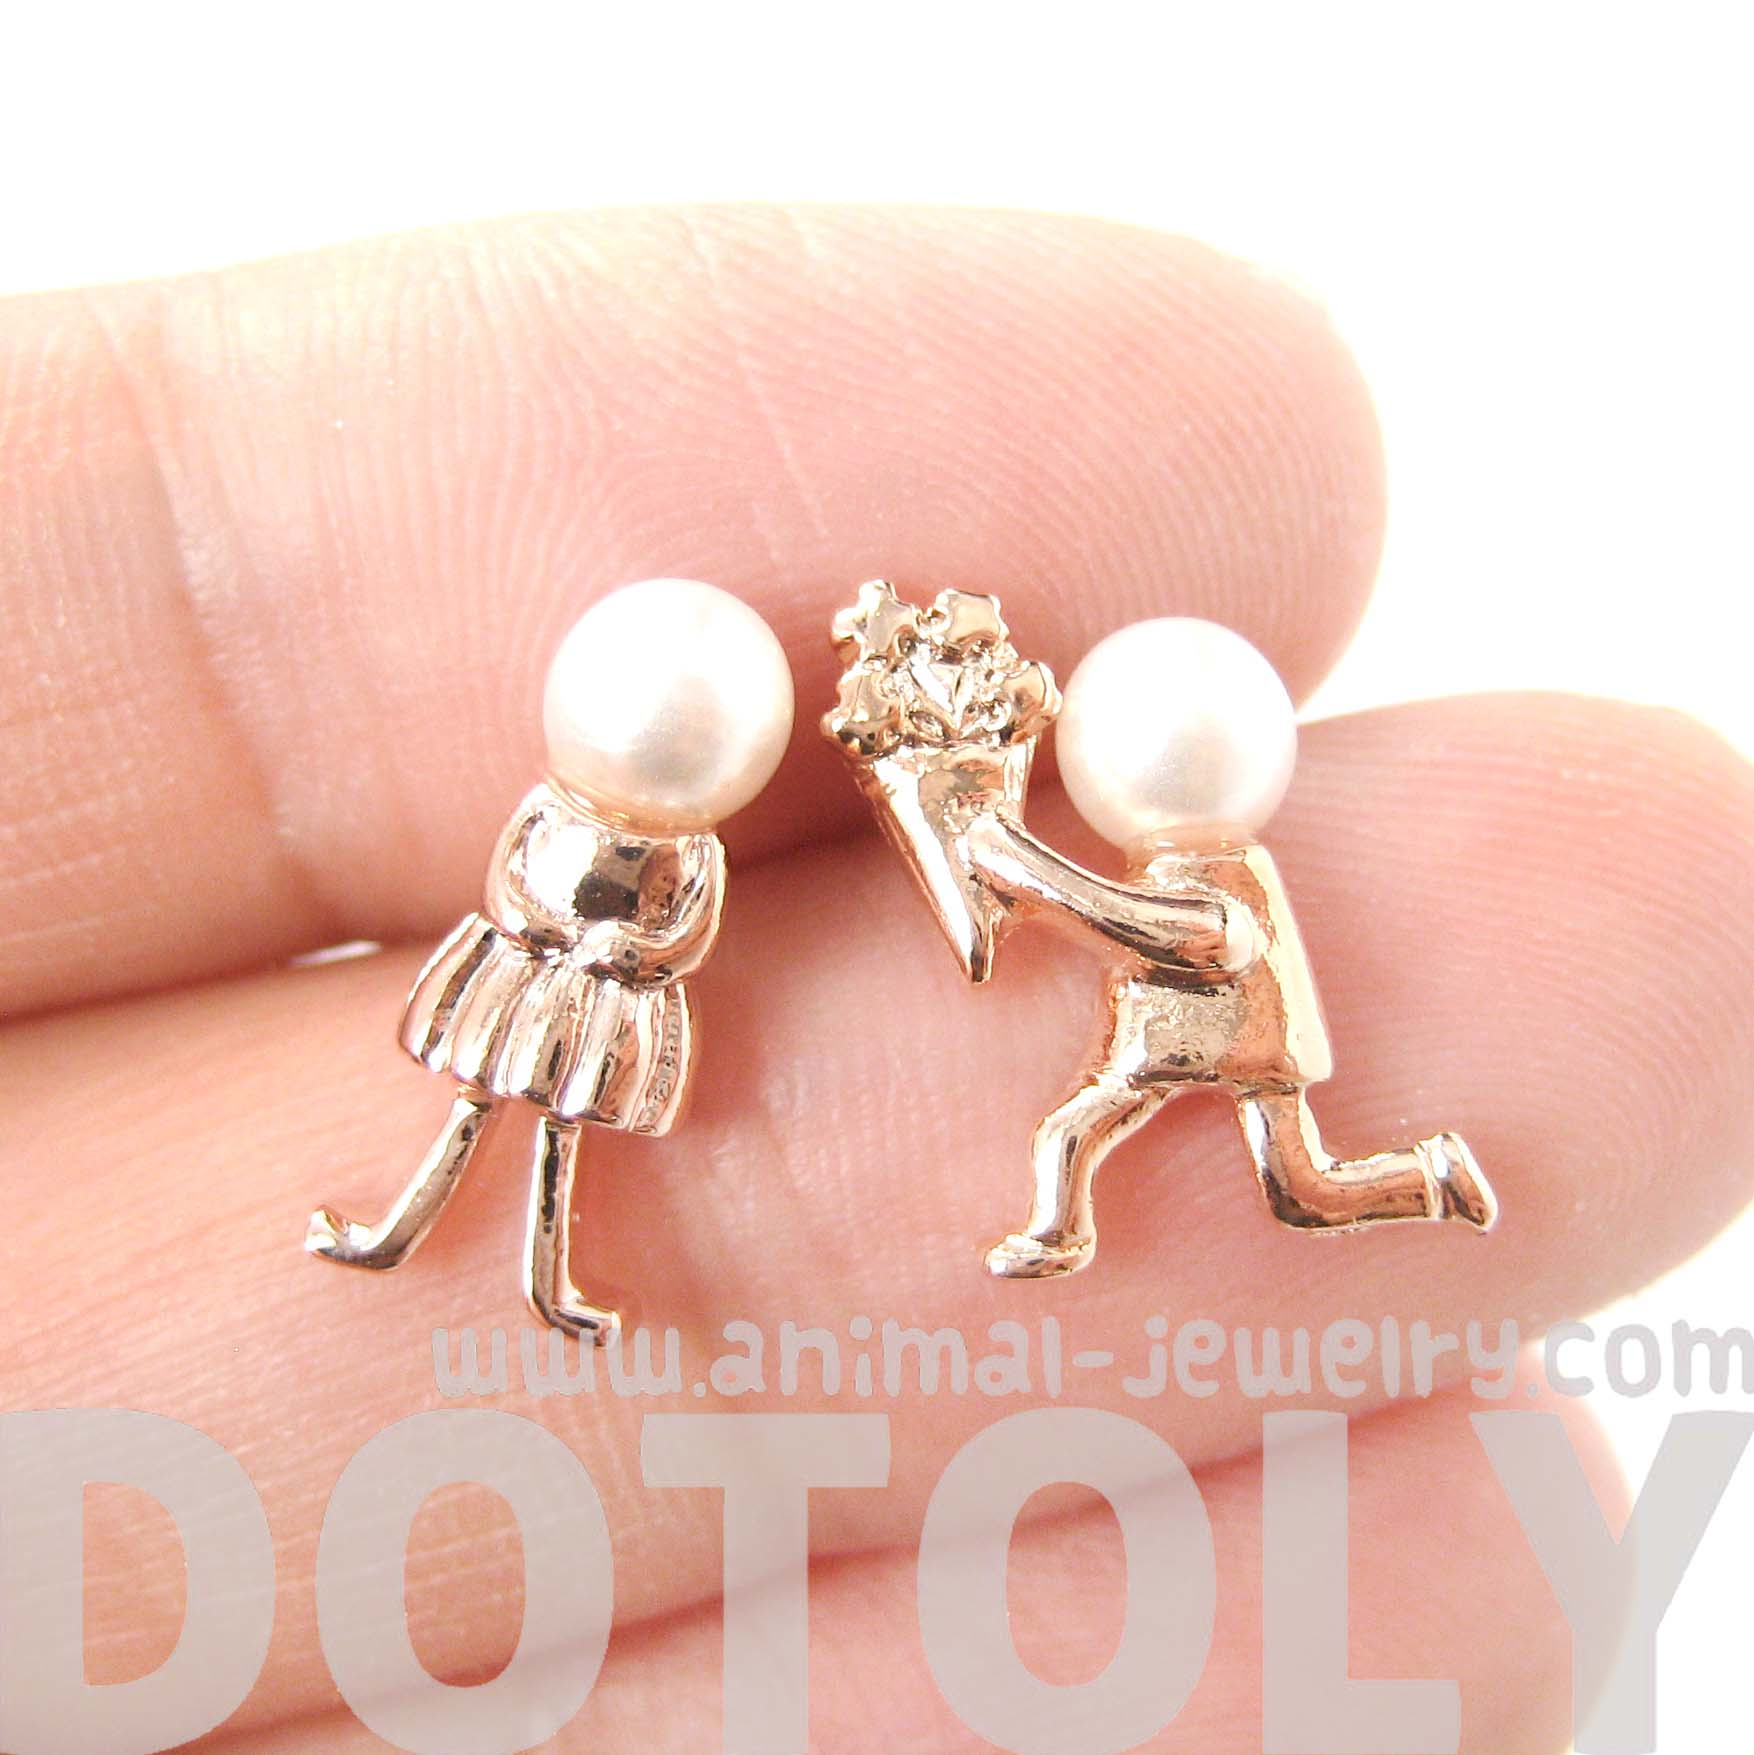 Boy and girl proposal stud earrings in rose gold with - Boy propose girl with rose image ...